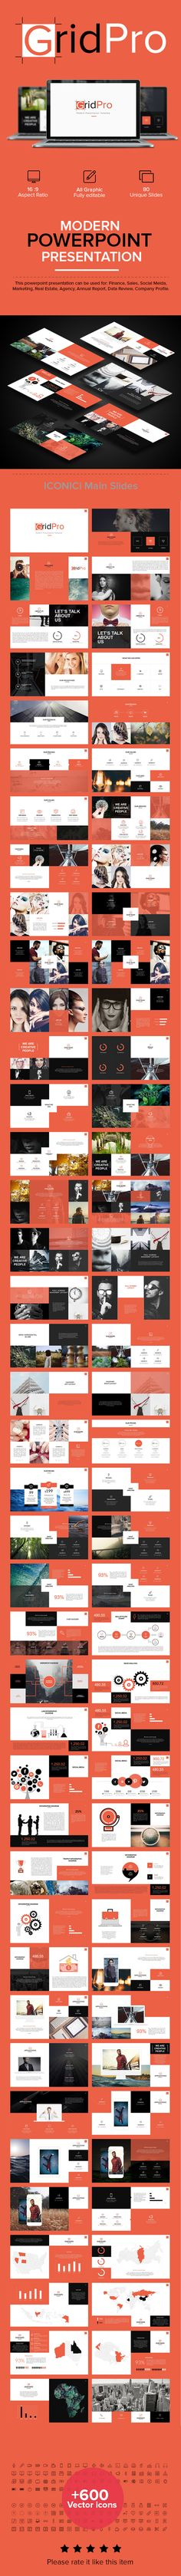 Grid Pro PowerPoint Template. Download here…